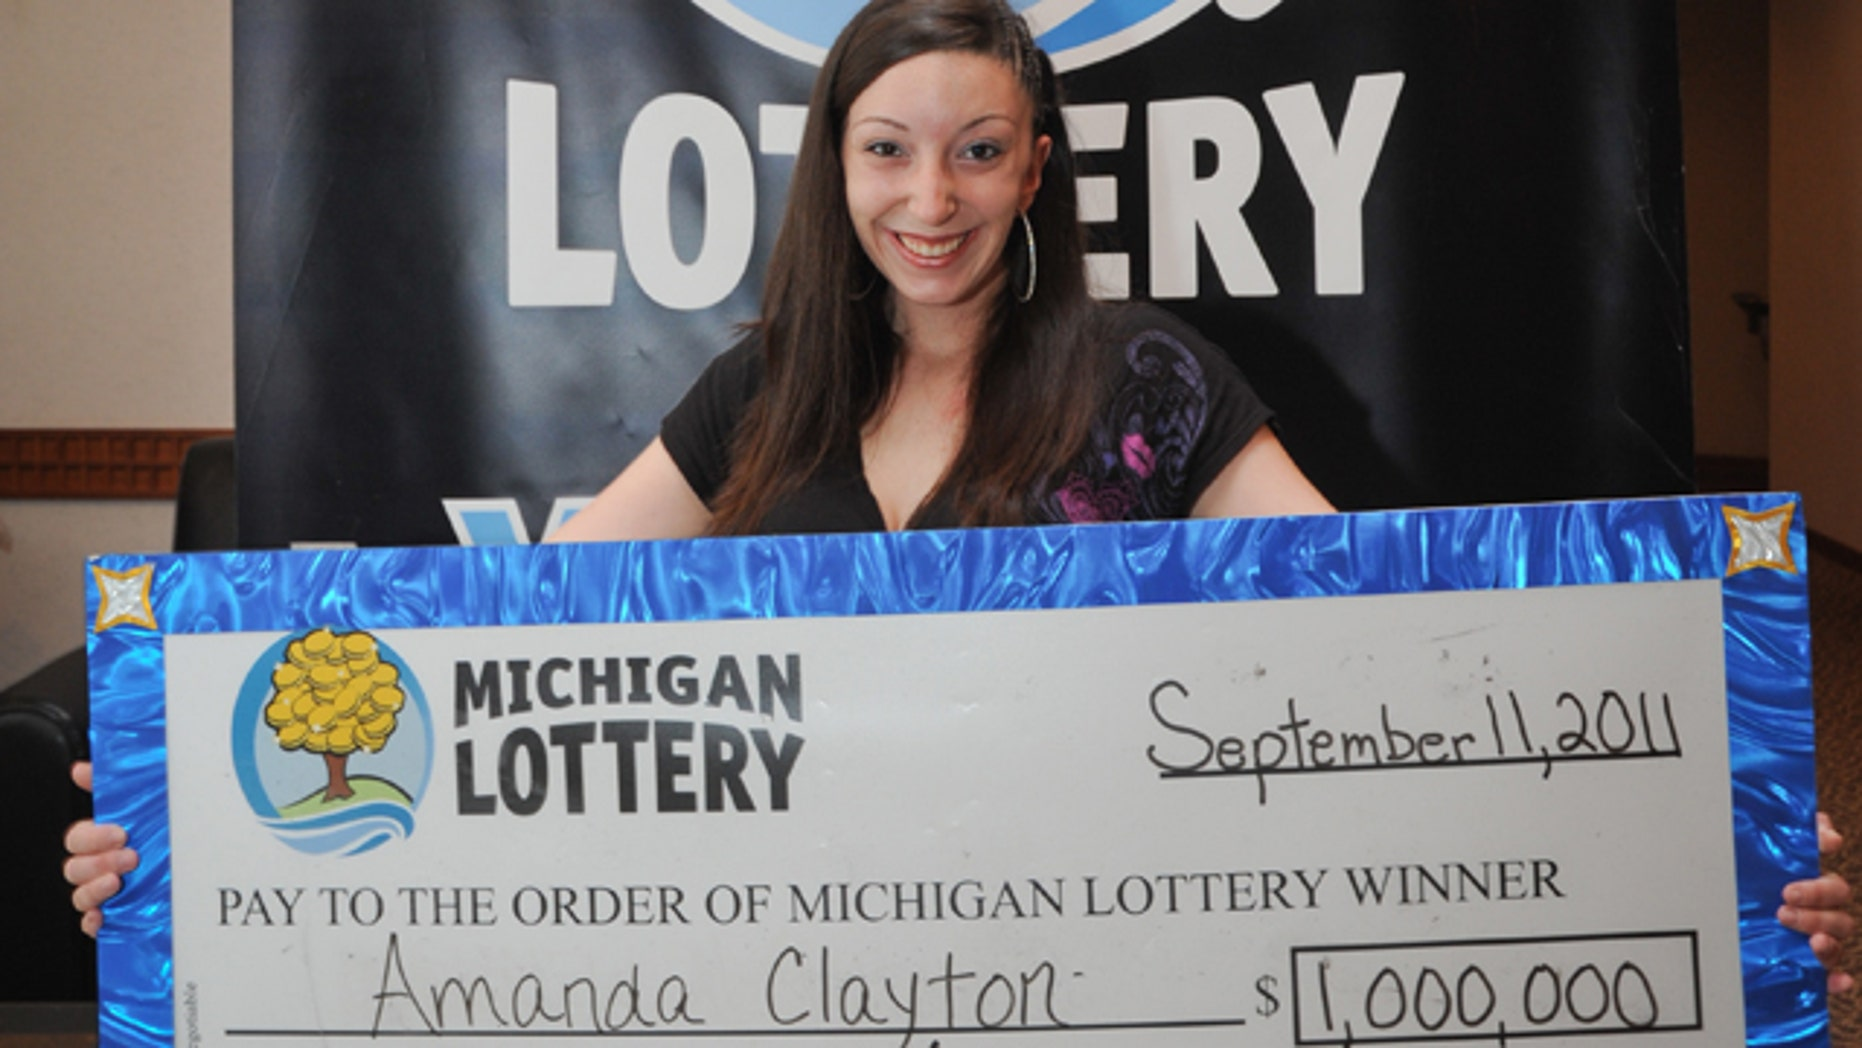 This photo, provided by the Michigan State Lottery, shows 25-year-old Amanda Clayton.